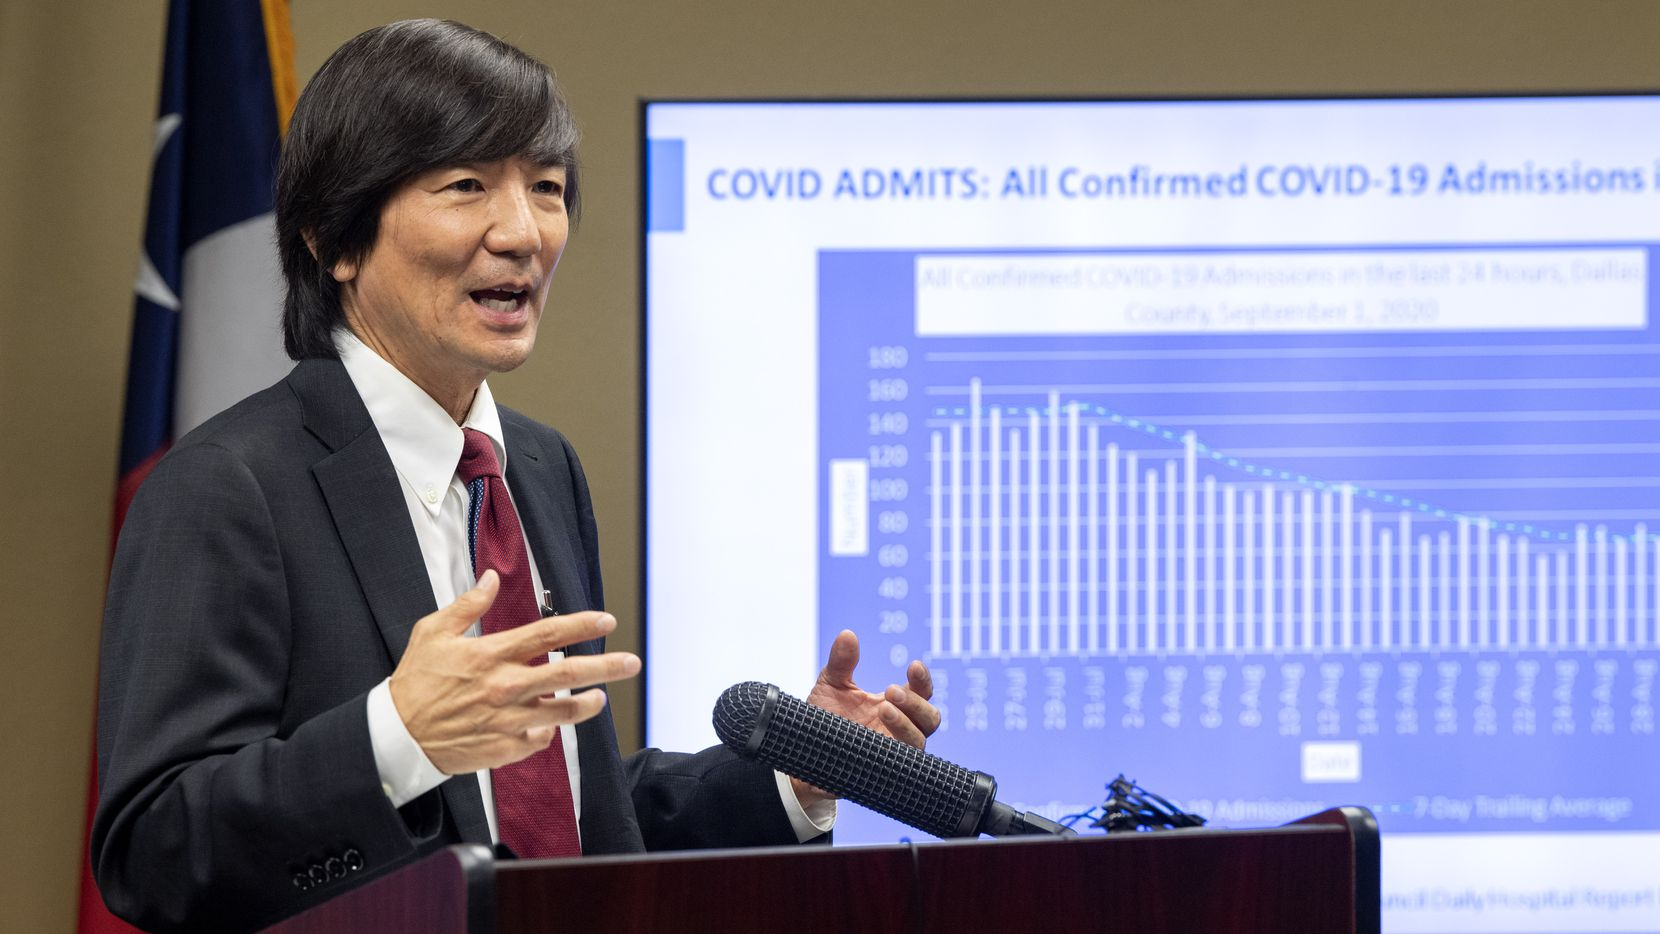 Dr. Philip Huang, Dallas County Health and Human Services director, discusses the decline in COVID-19 related hospital admissions during a news conference Wednesday, September 2, 2020 at the Dallas County Emergency Operations Center in Dallas. (Jeffrey McWhorter/Special Contributor)